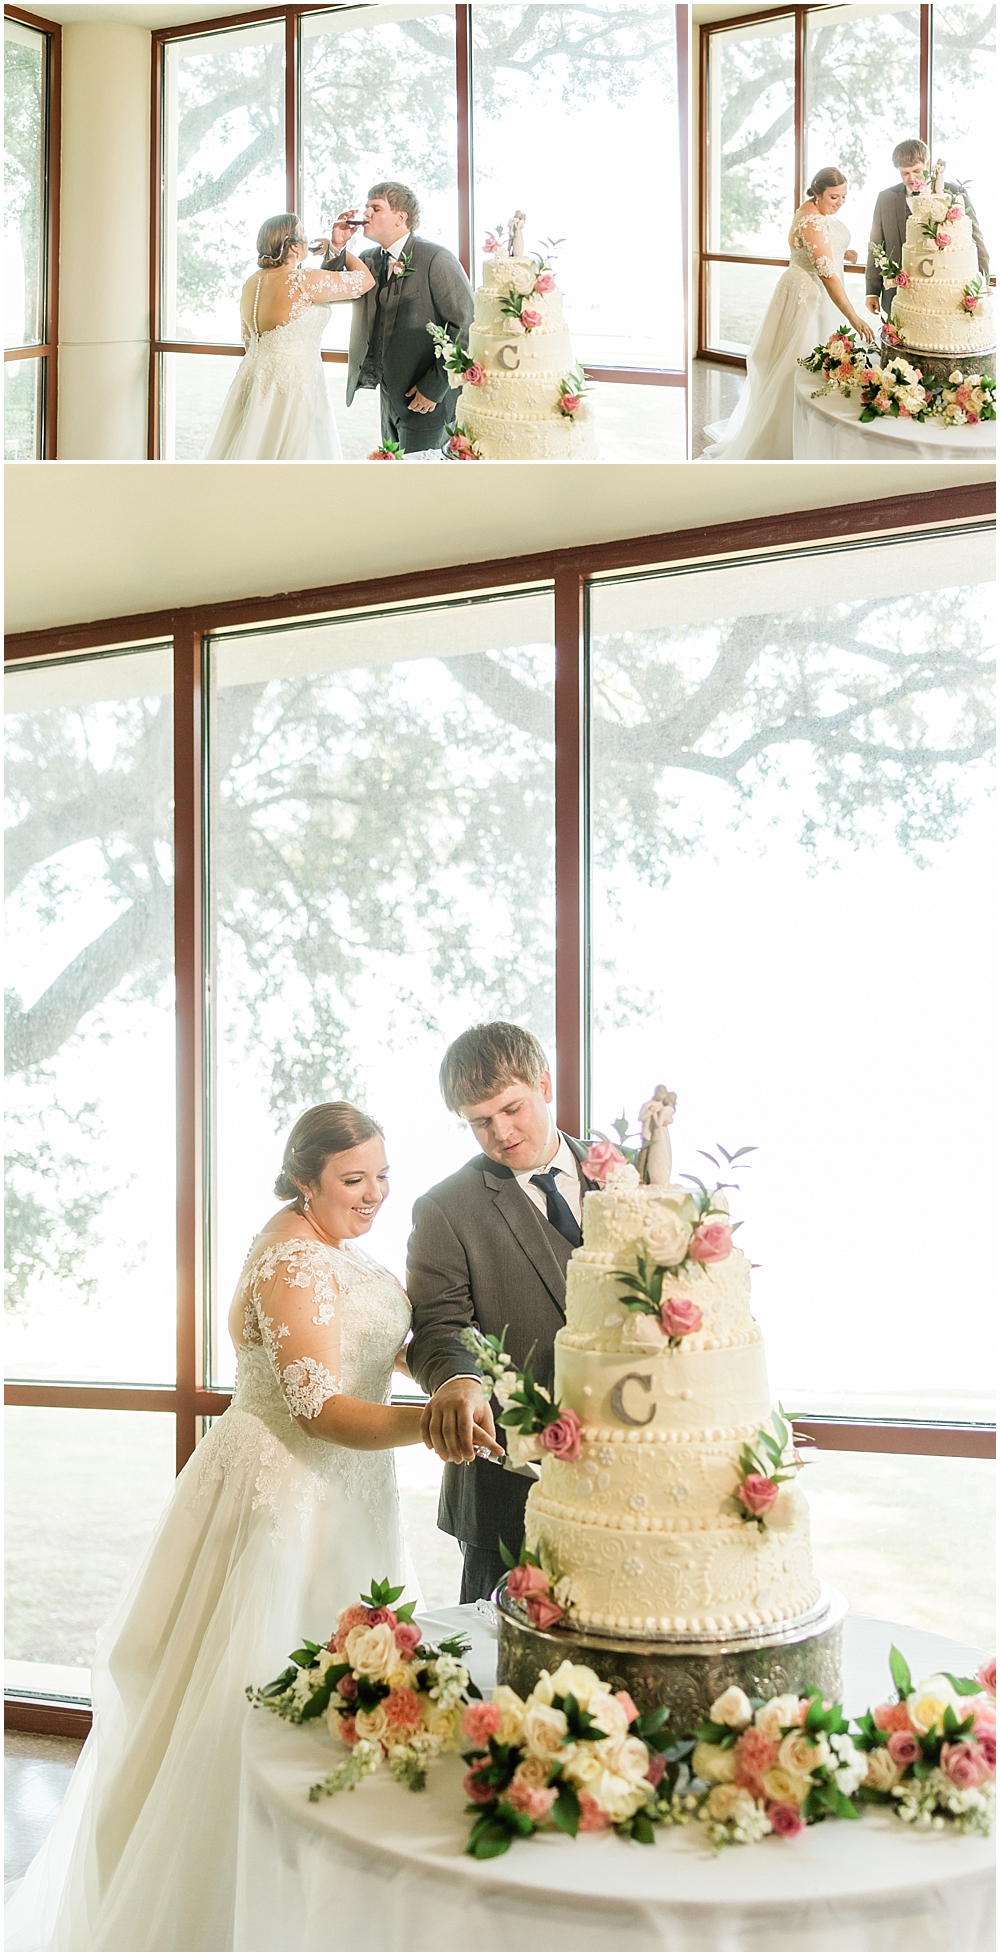 Ashton-Clark-Photography-Wedding-Portrait-Family-Photographer-Mobile-Alabama_0116.jpg